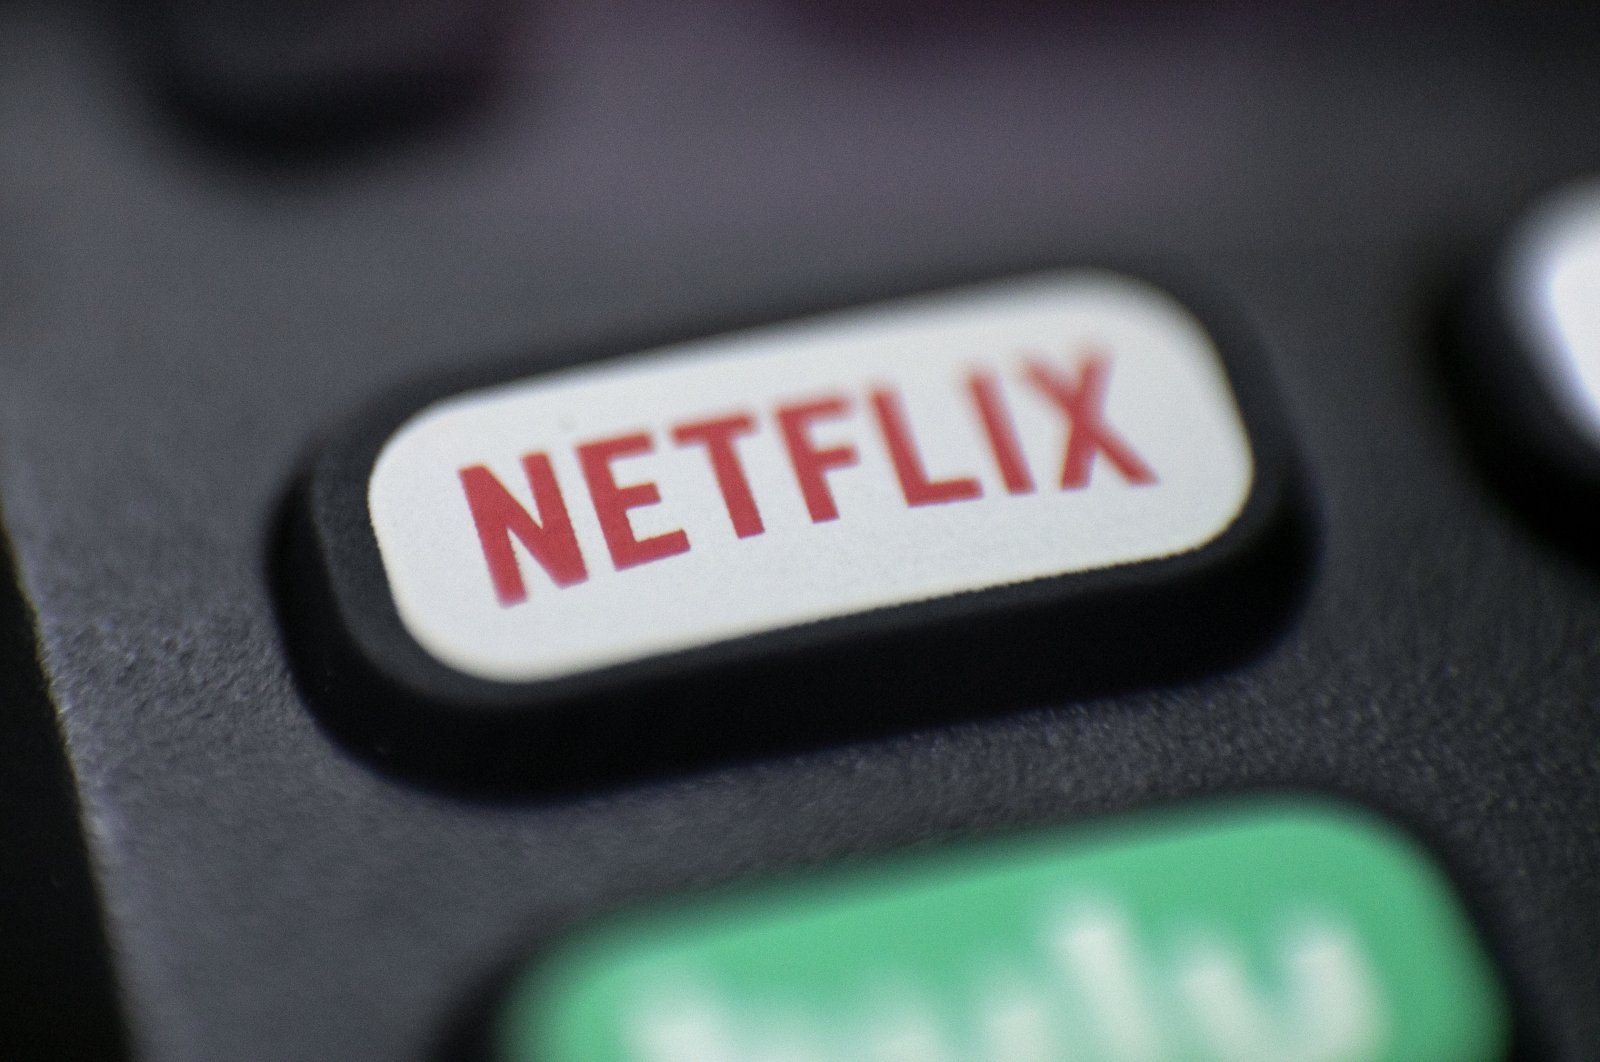 A logo for Netflix can be seen on a remote control in Portland, Oregon, U.S., Aug. 13, 2020. (AP Photo)